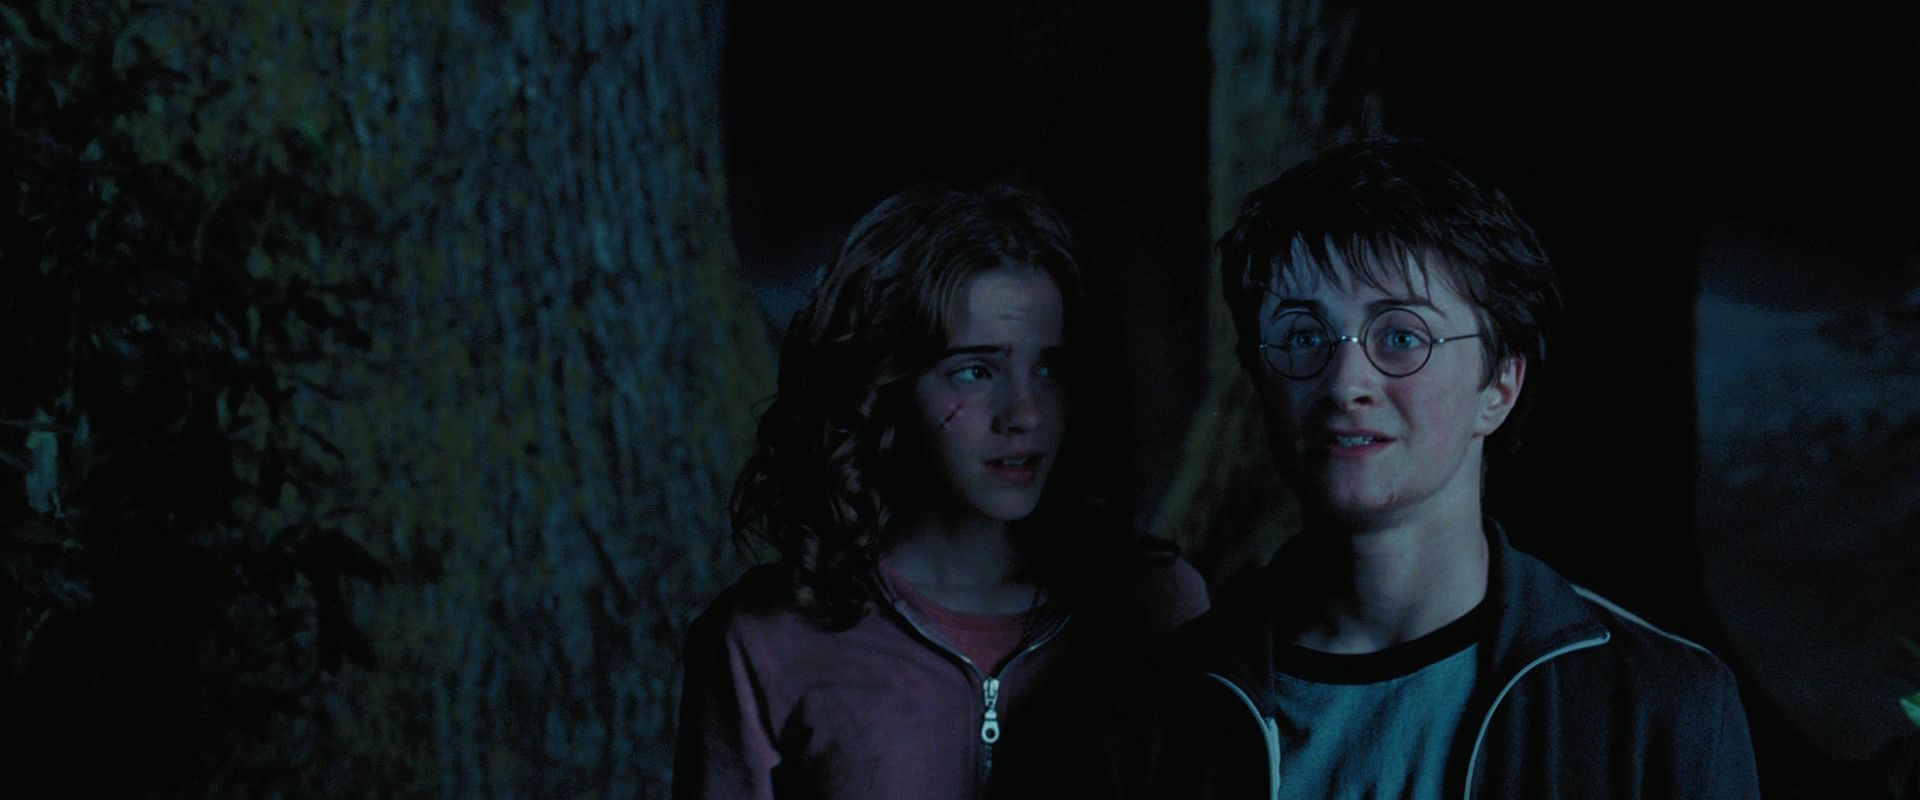 harry potter and the prisoner of azkaban There is an atmosphere of fear in the movie harry potter and the prisoner of  azkaban because a prisoner escapes from a supposedly inescapable prison at  the.